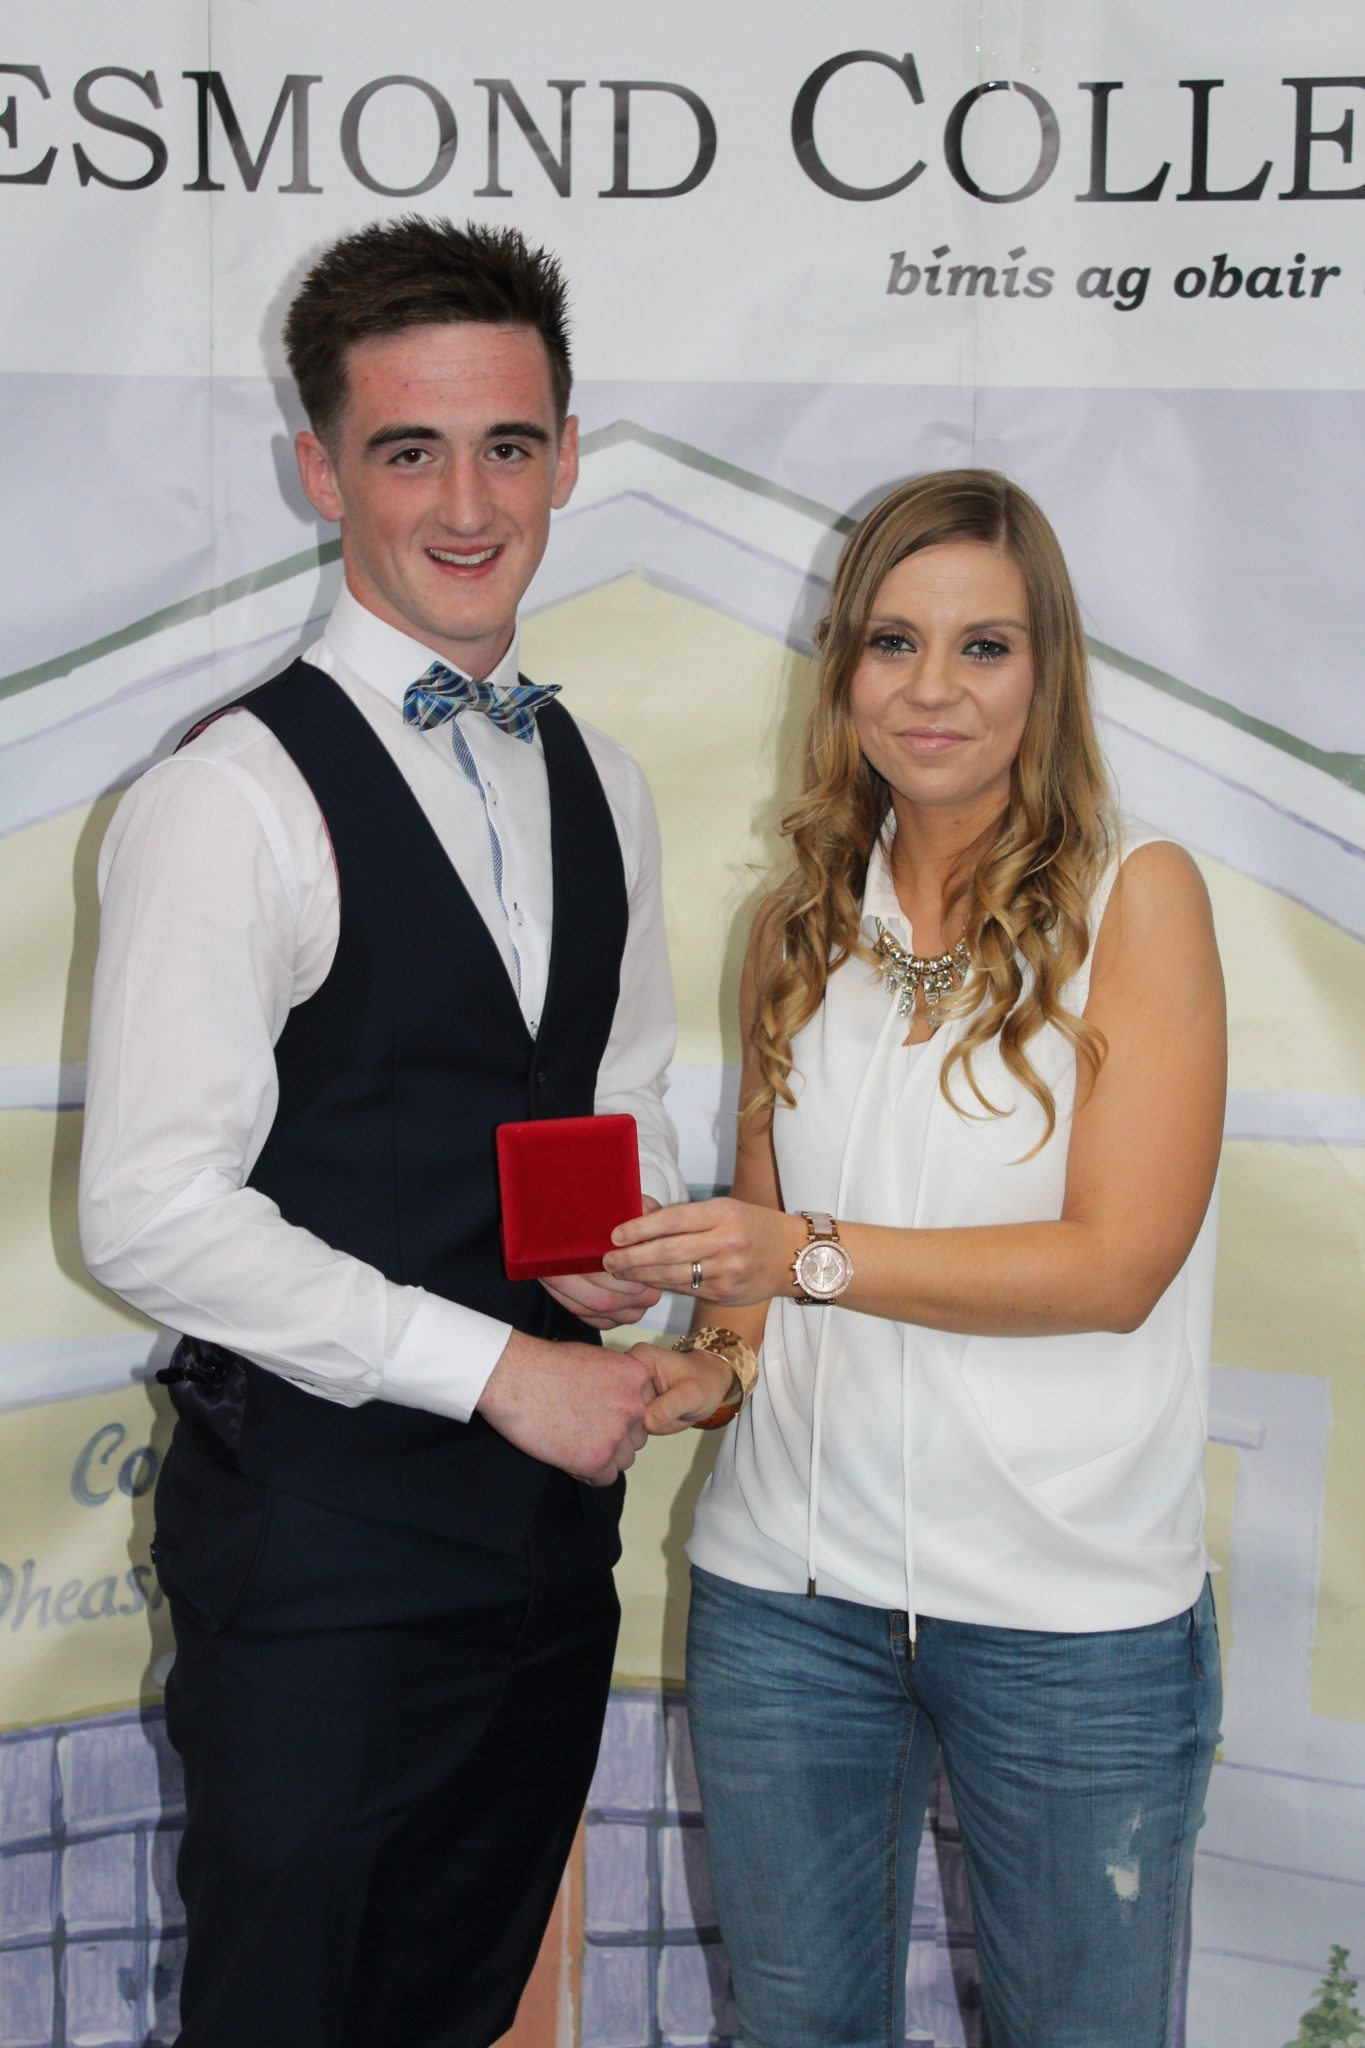 Desmond College Leaving Certificate Graduation Awards 2015: Sports Awards: Steven Brosnan with Ms Corkery